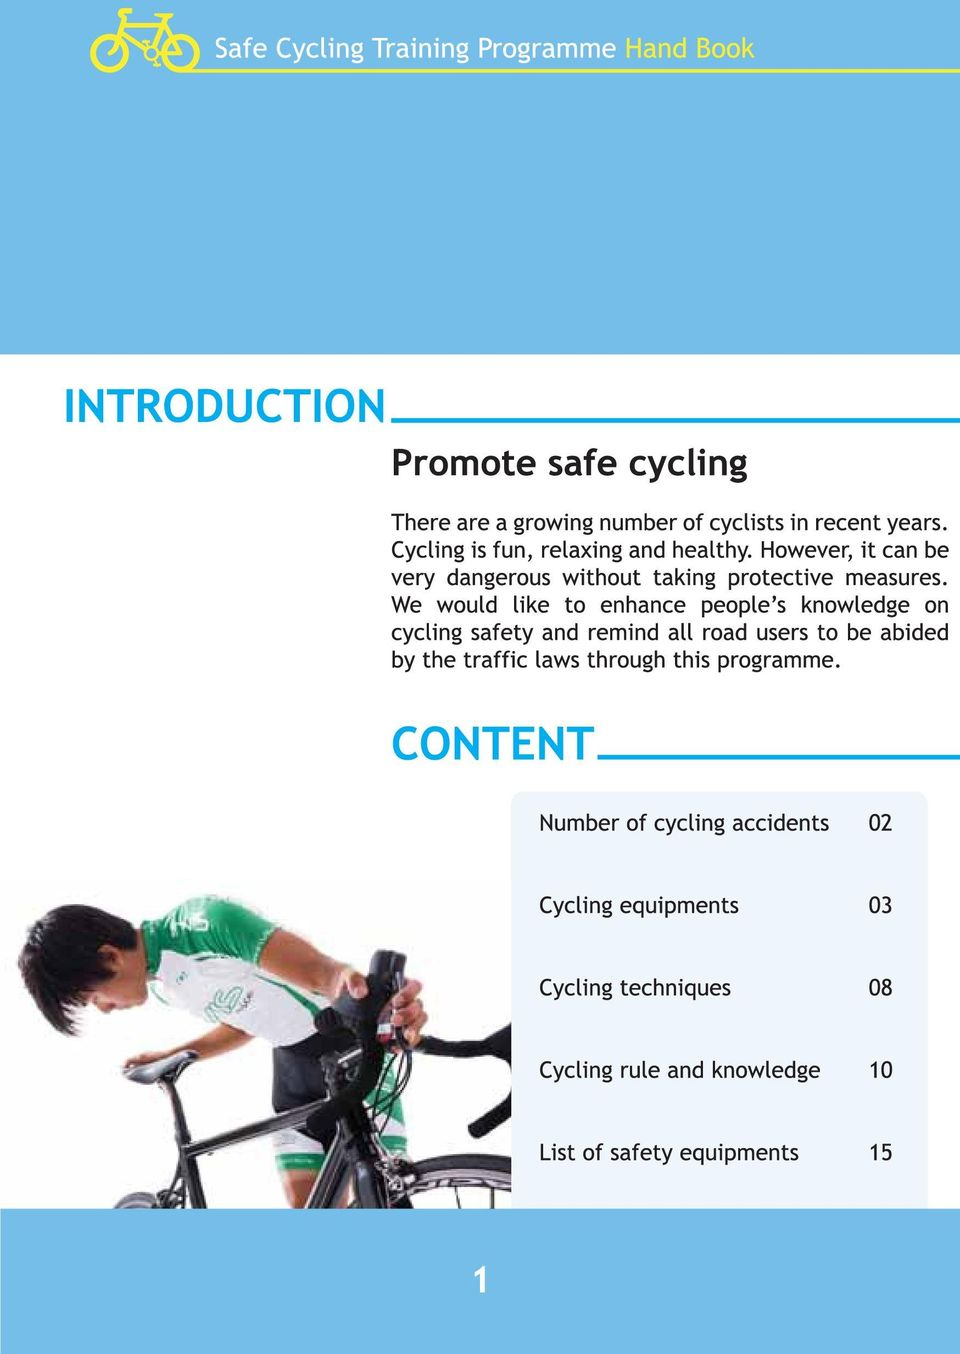 We would like to enhance people's knowledge on cycling safety and remind all road users to be abided by the traffic laws through